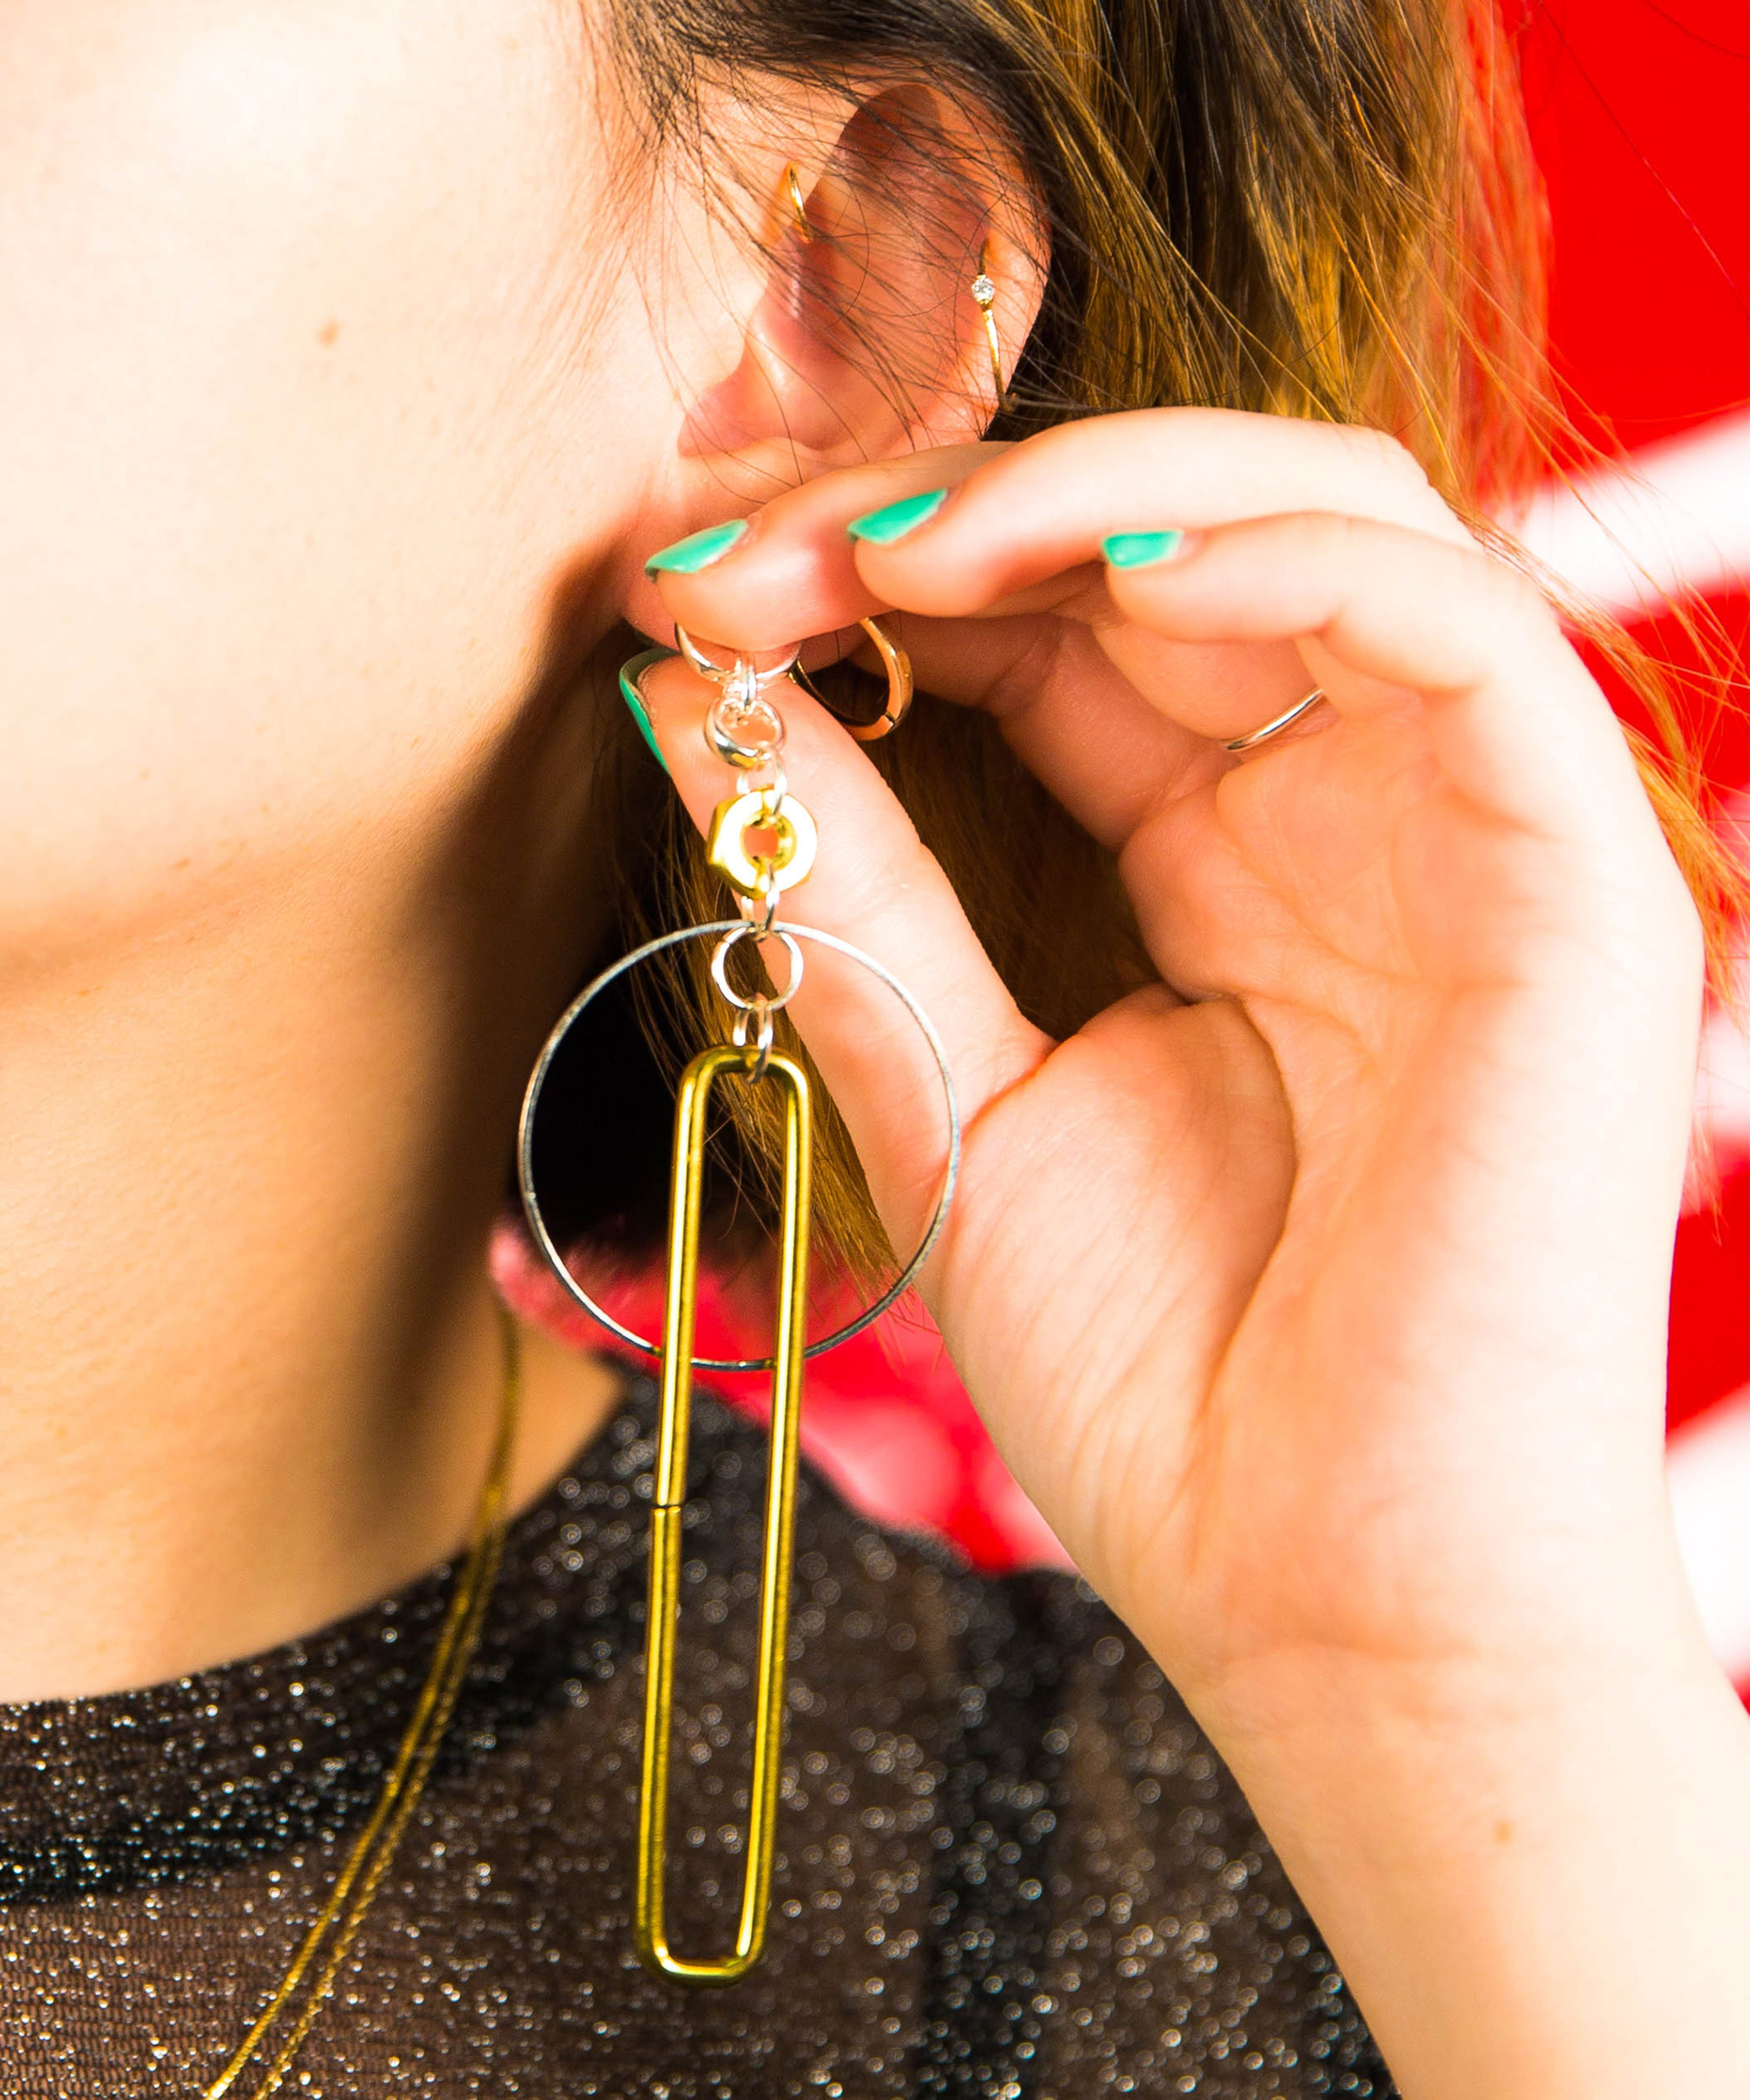 How To Treat Infected Ear Piercing - Bump, Cleaning